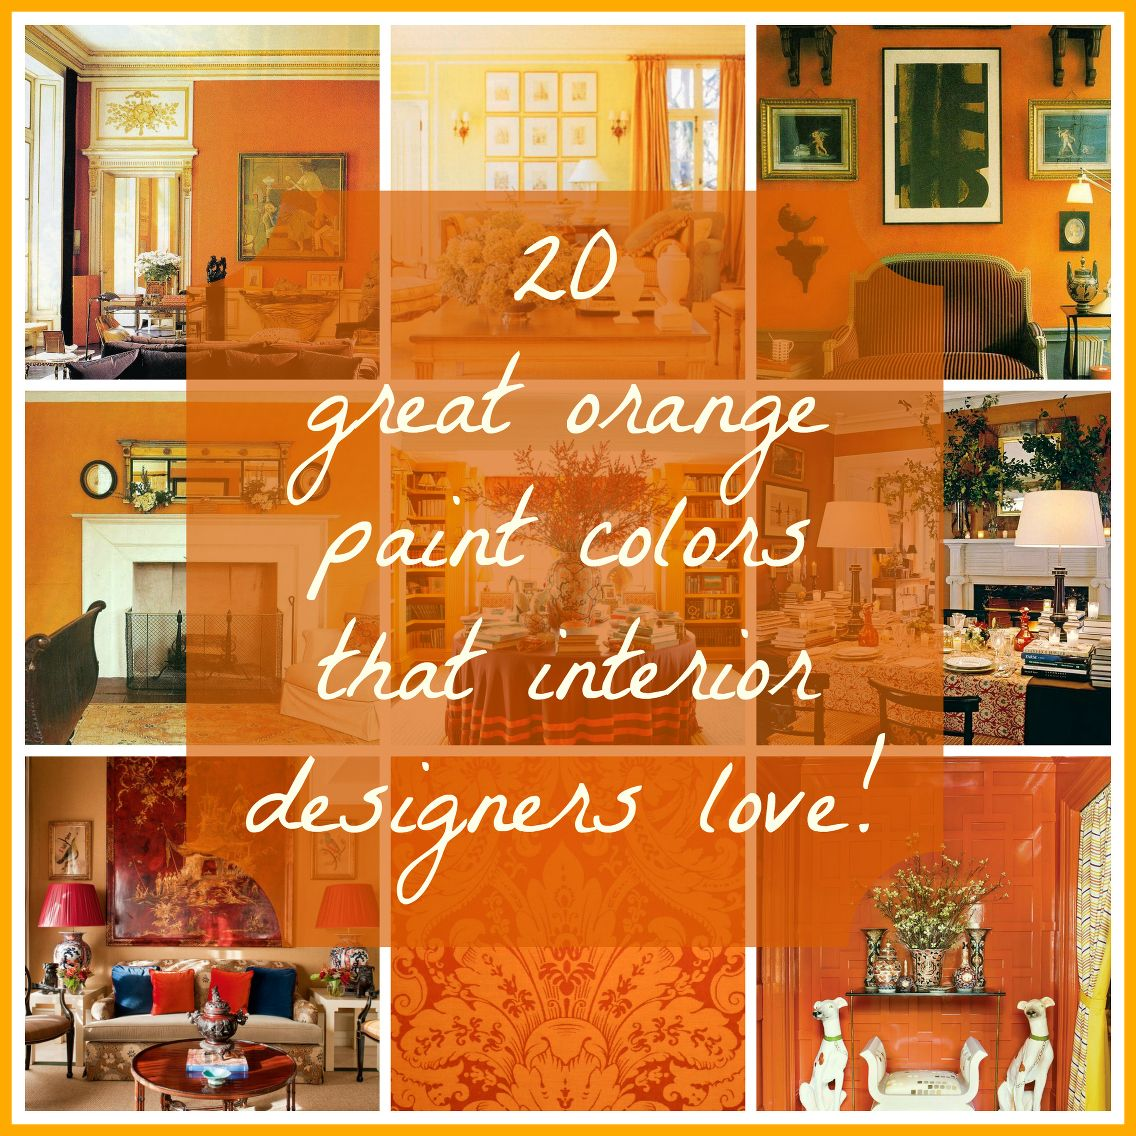 20 great shades of orange wall paint and coral apricot kumquat 20 great shades of orange wall paint and coral apricot      rh   pinterest com